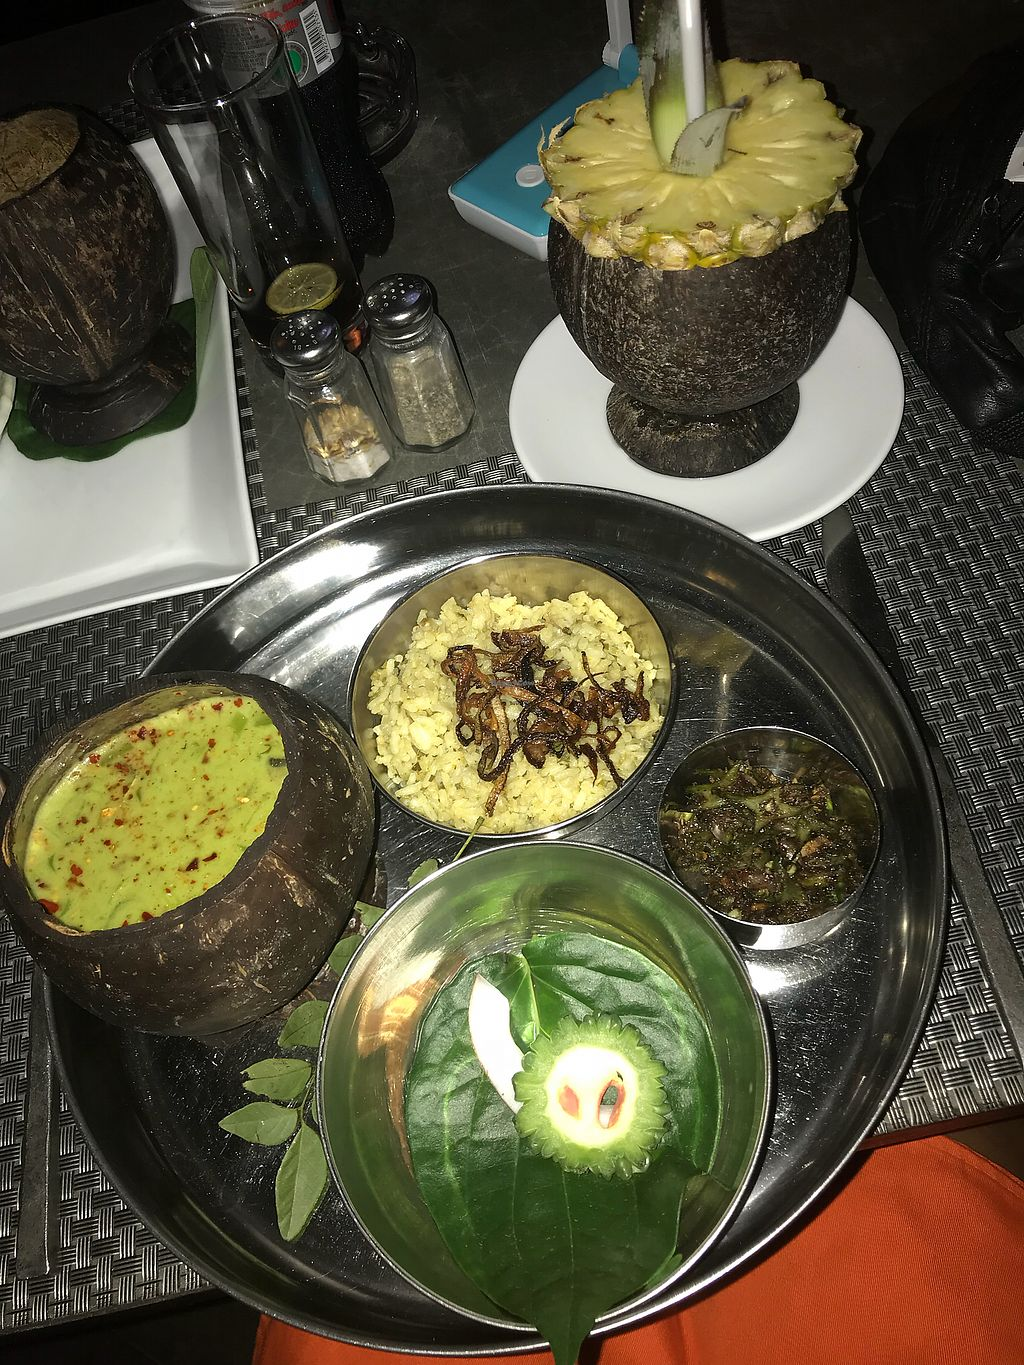 "Photo of Lords Restaurant Complex  by <a href=""/members/profile/KatrineVindelev"">KatrineVindelev</a> <br/>Green curry with vegetables  <br/> February 8, 2018  - <a href='/contact/abuse/image/44594/356284'>Report</a>"